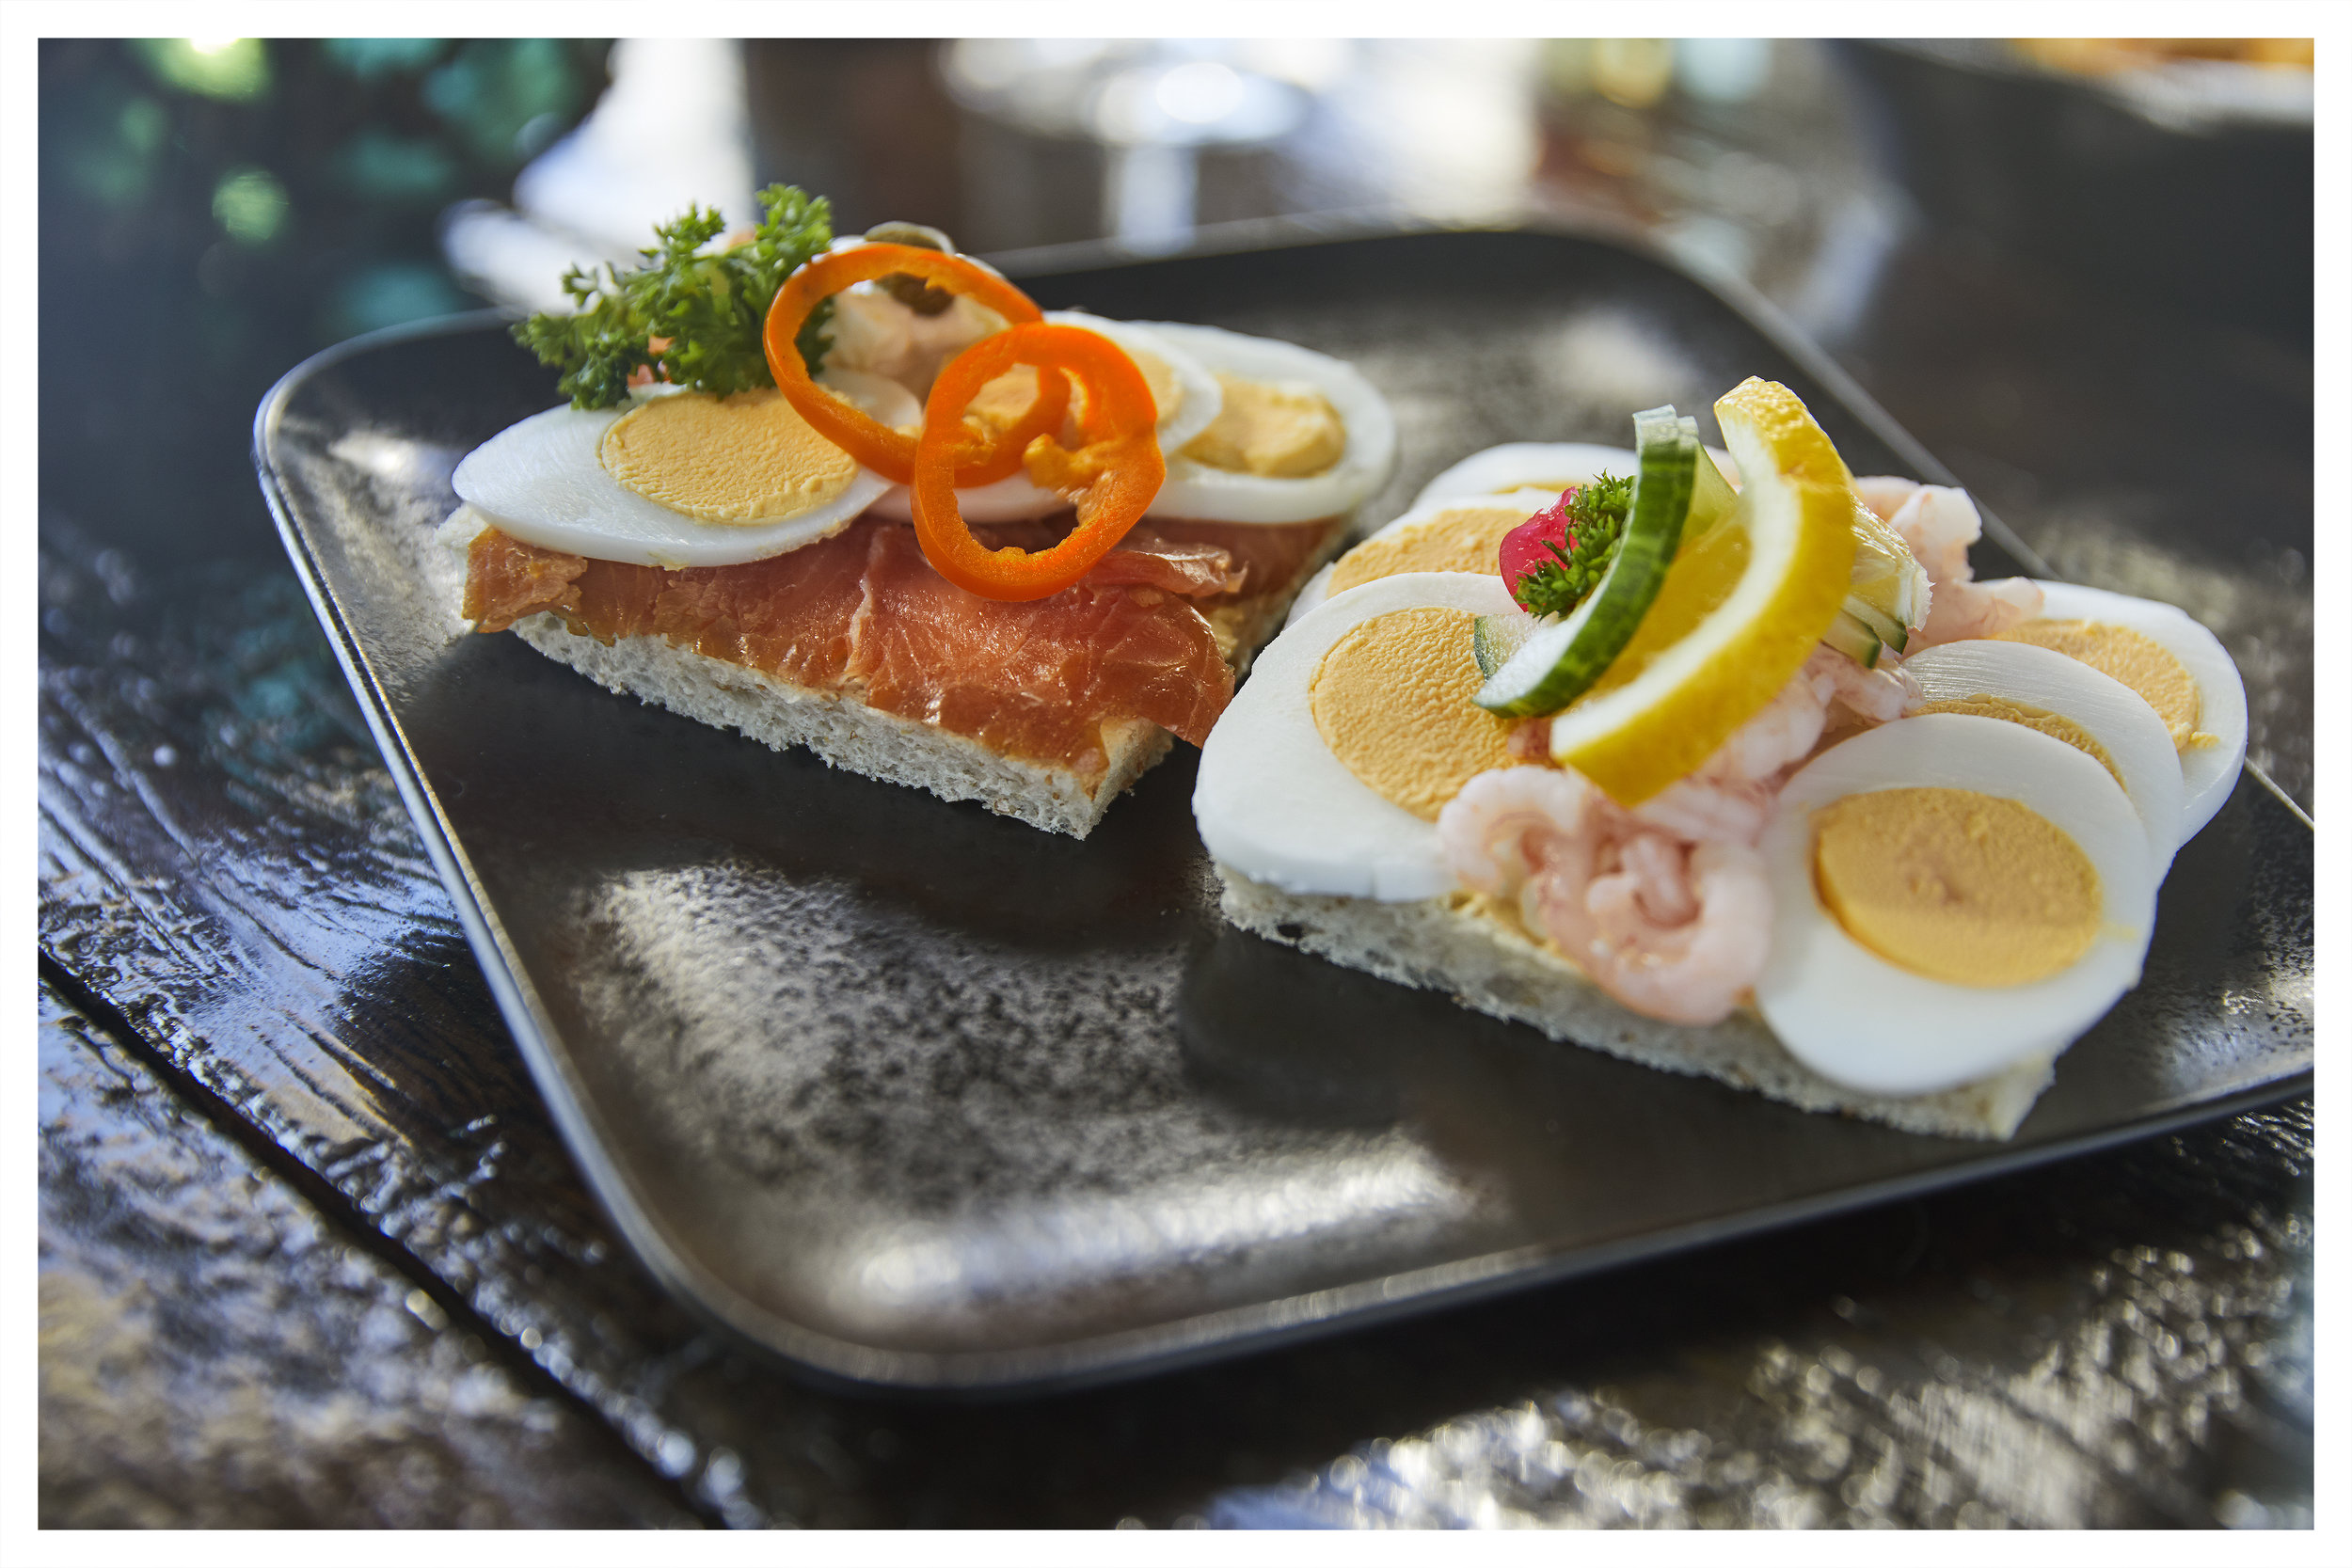 Open Faced Sanwitches  - Traditional Icelandic sandwitches made fresh, with Smoked Salmon, Shrimps or Herring.